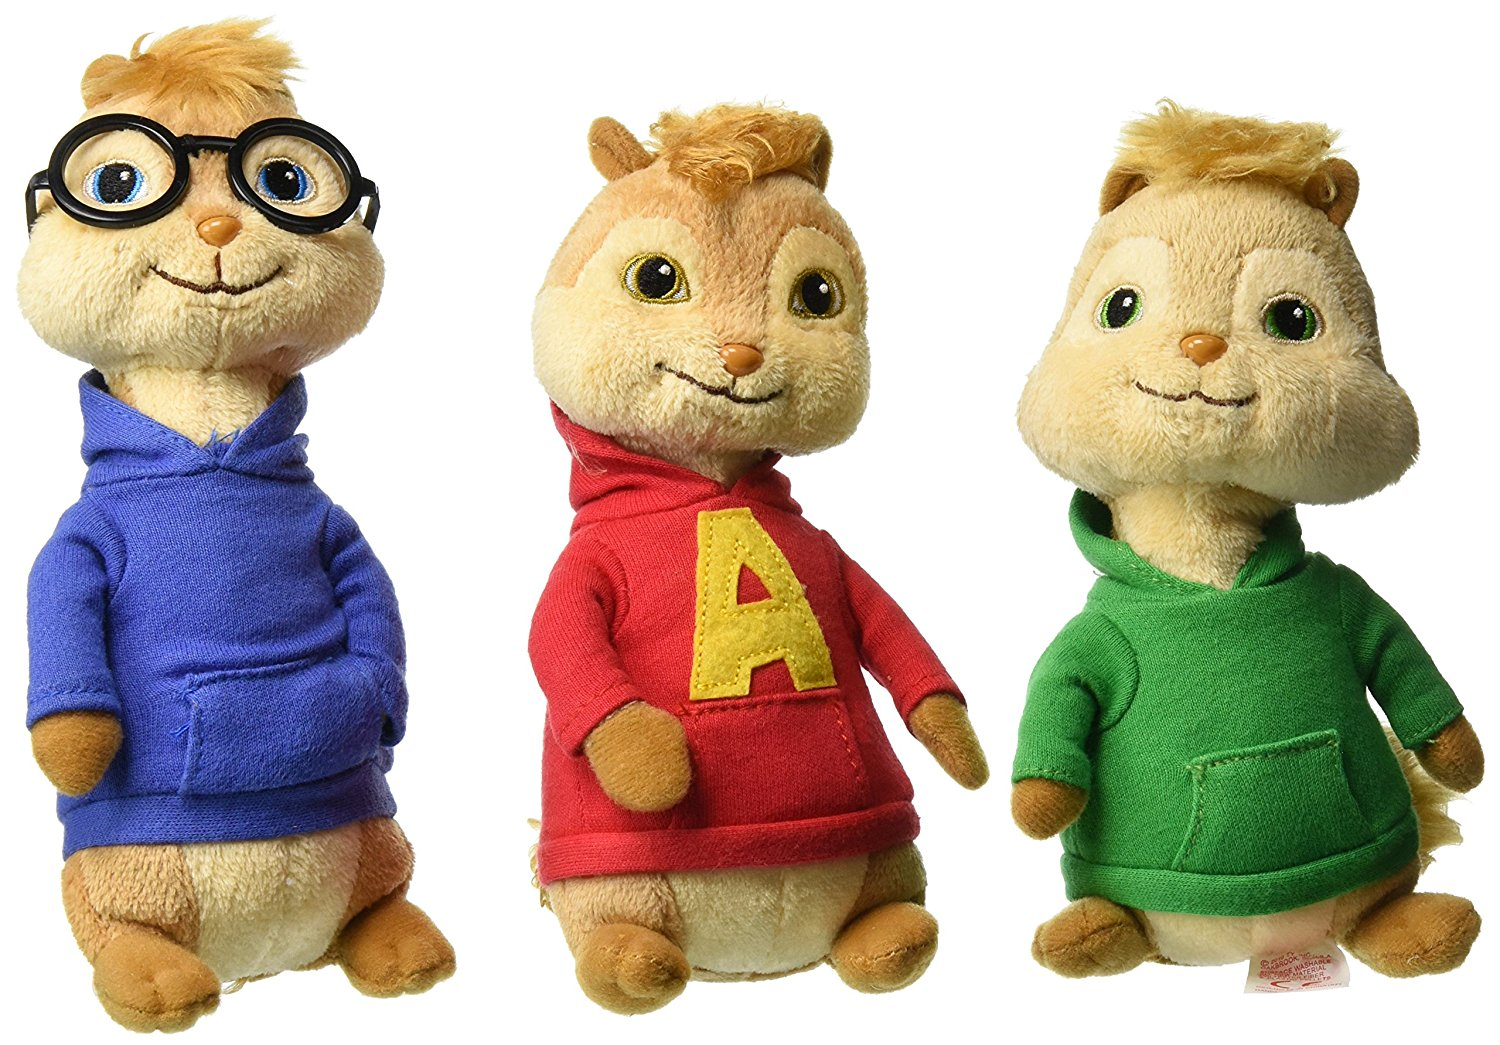 Alvin And The Chipmunks 3 Images buy ty beanie babies alvin & the chipmunks alvin, theodore